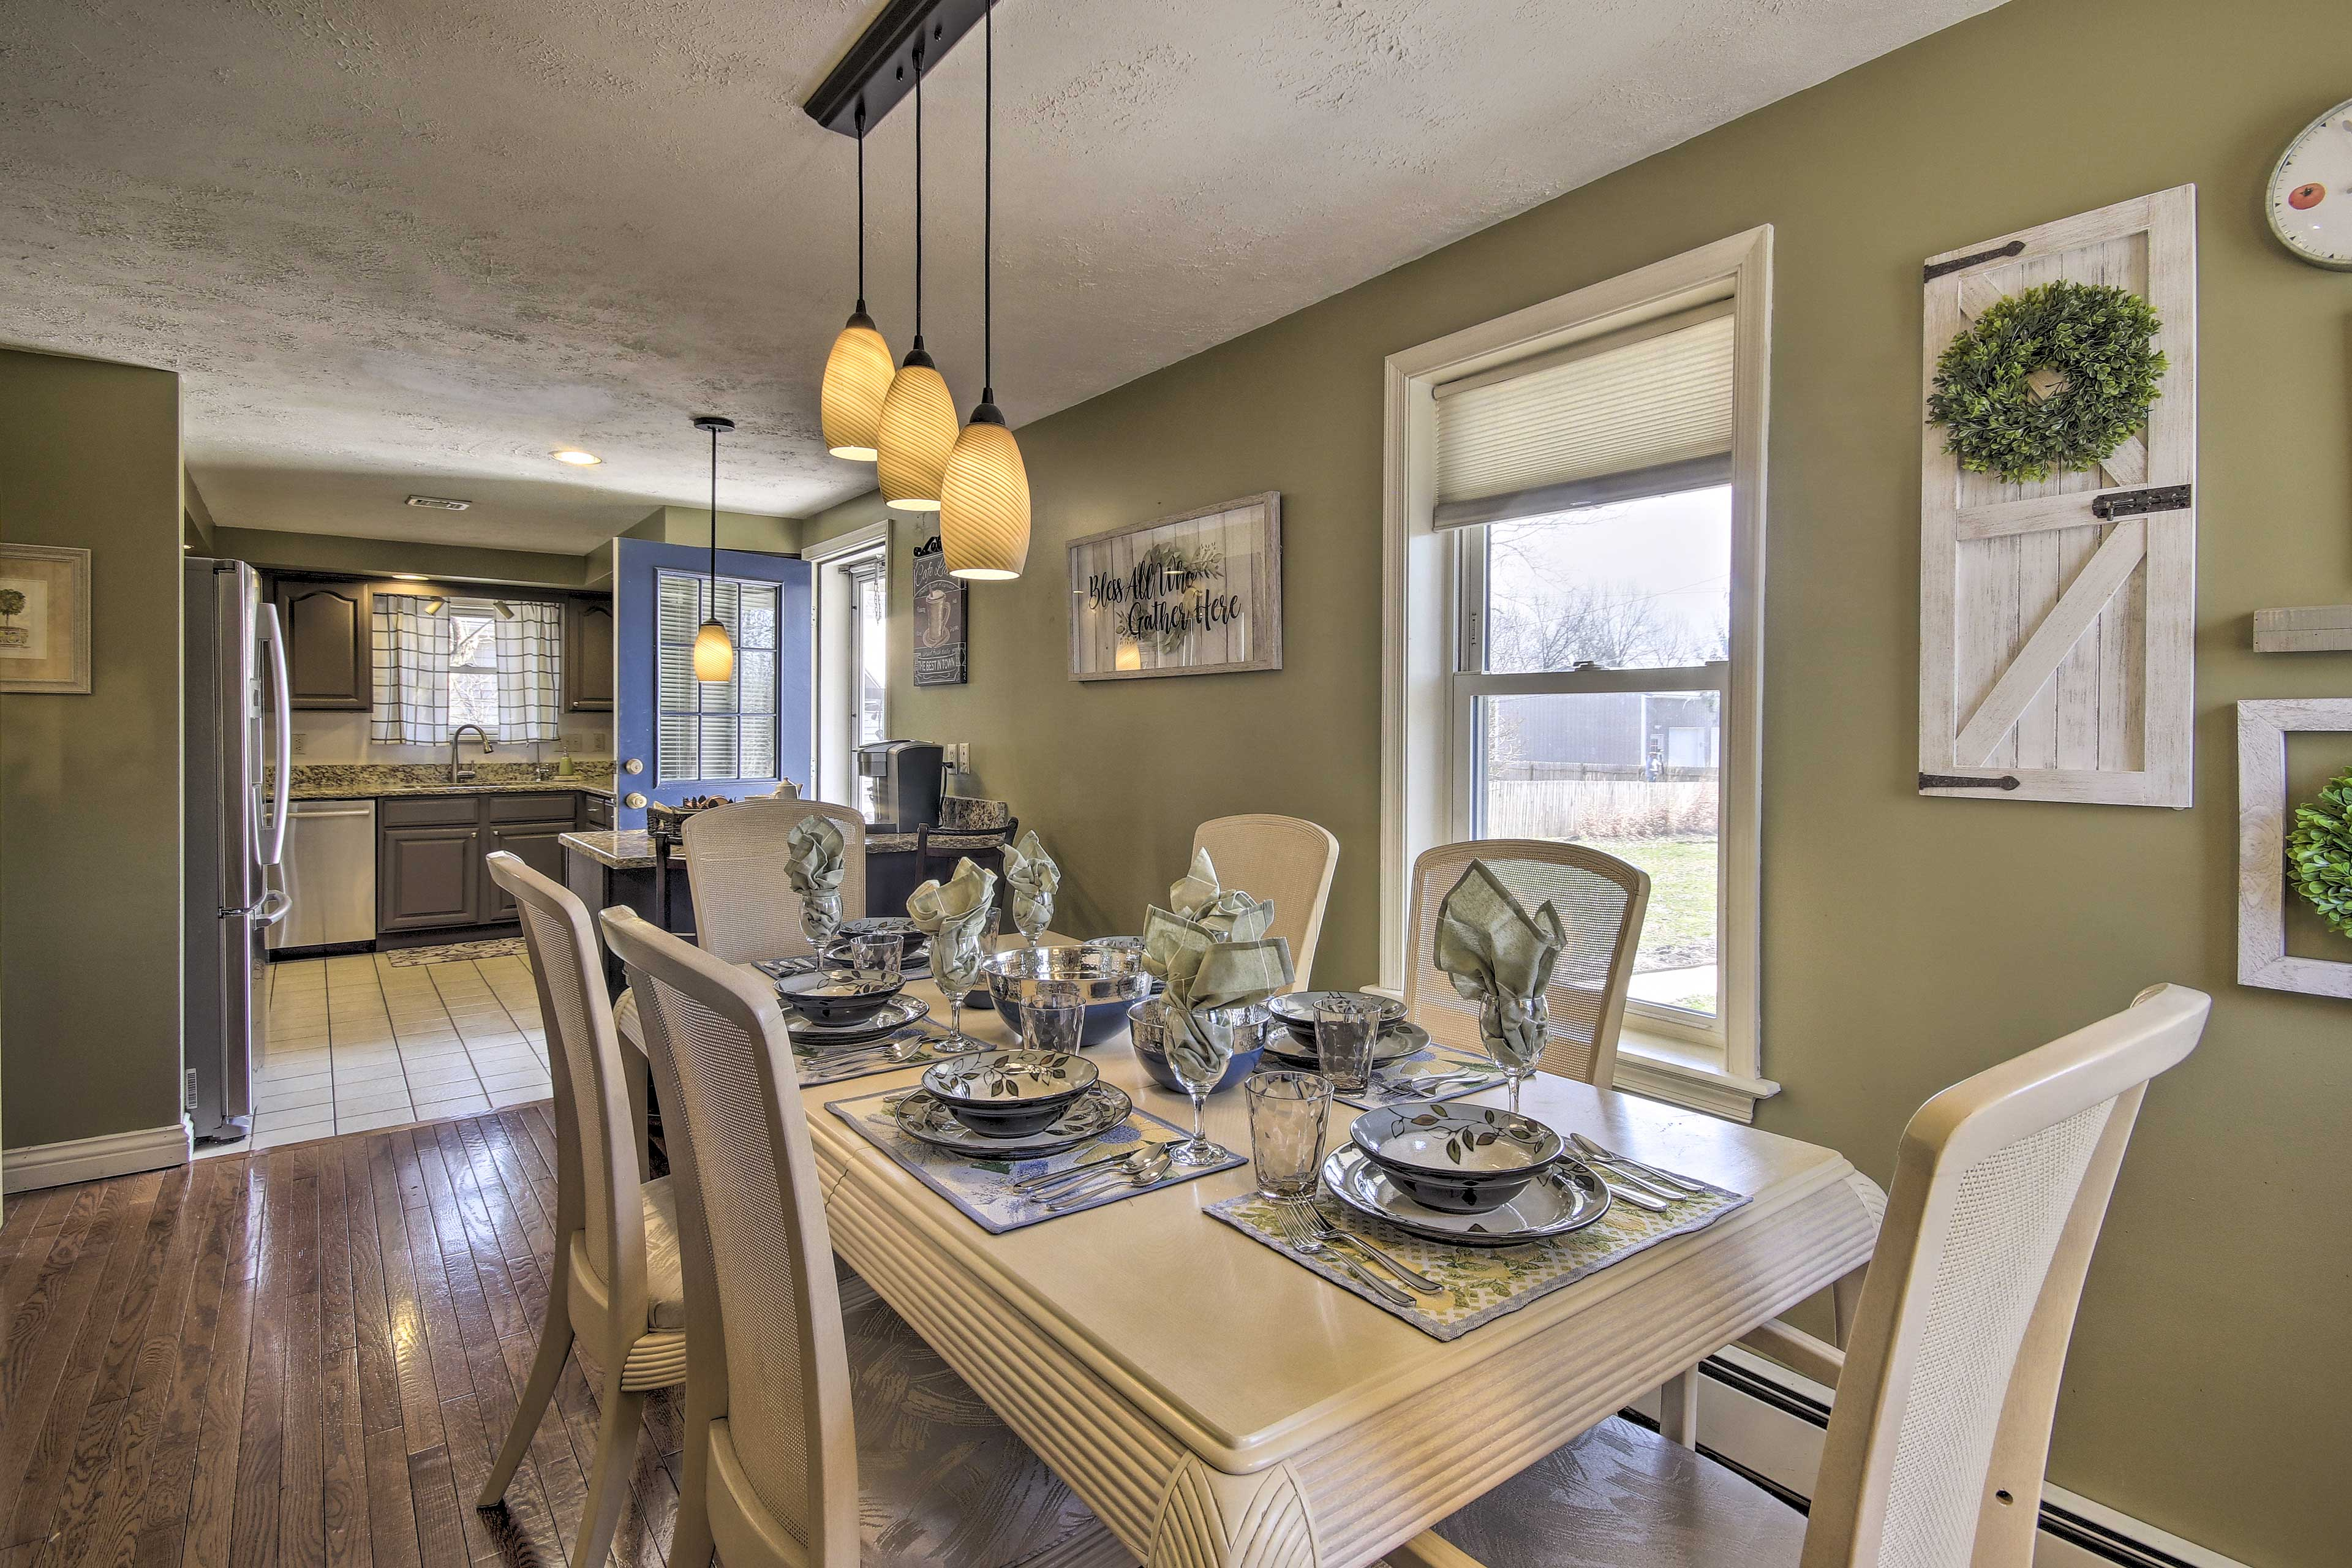 Share home-cooked feasts at the elegant dining table.